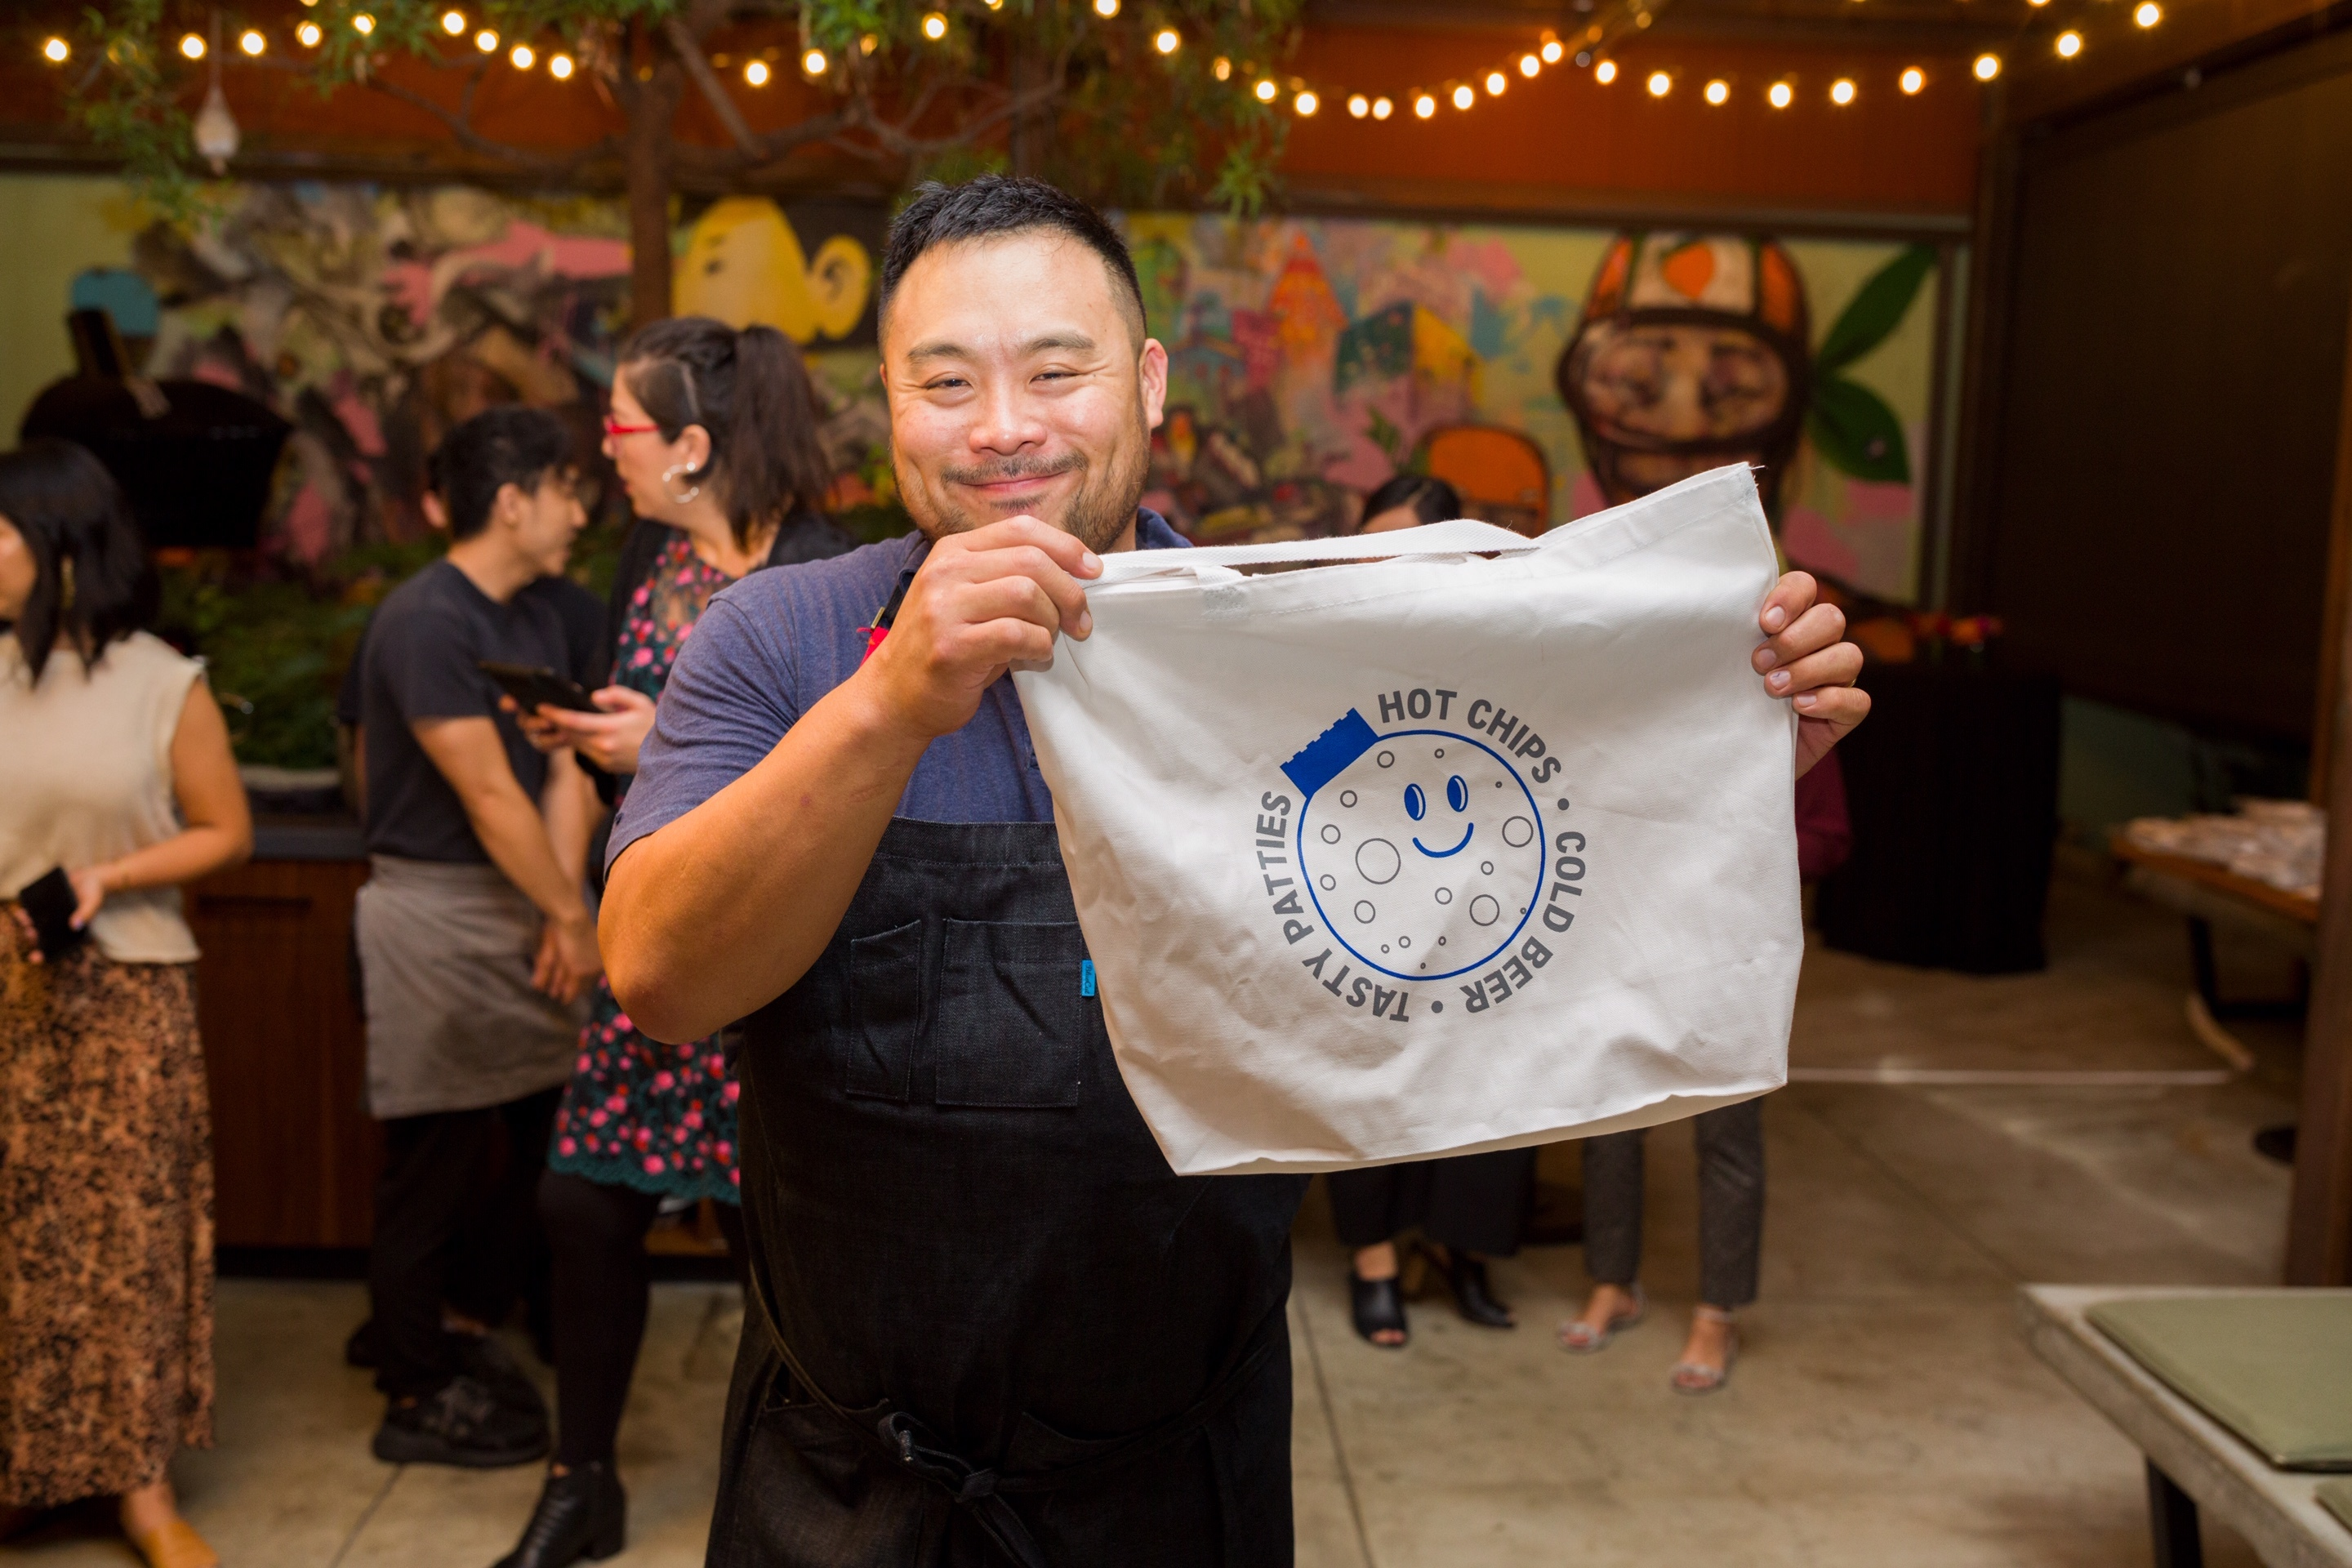 A chef holds up a tote